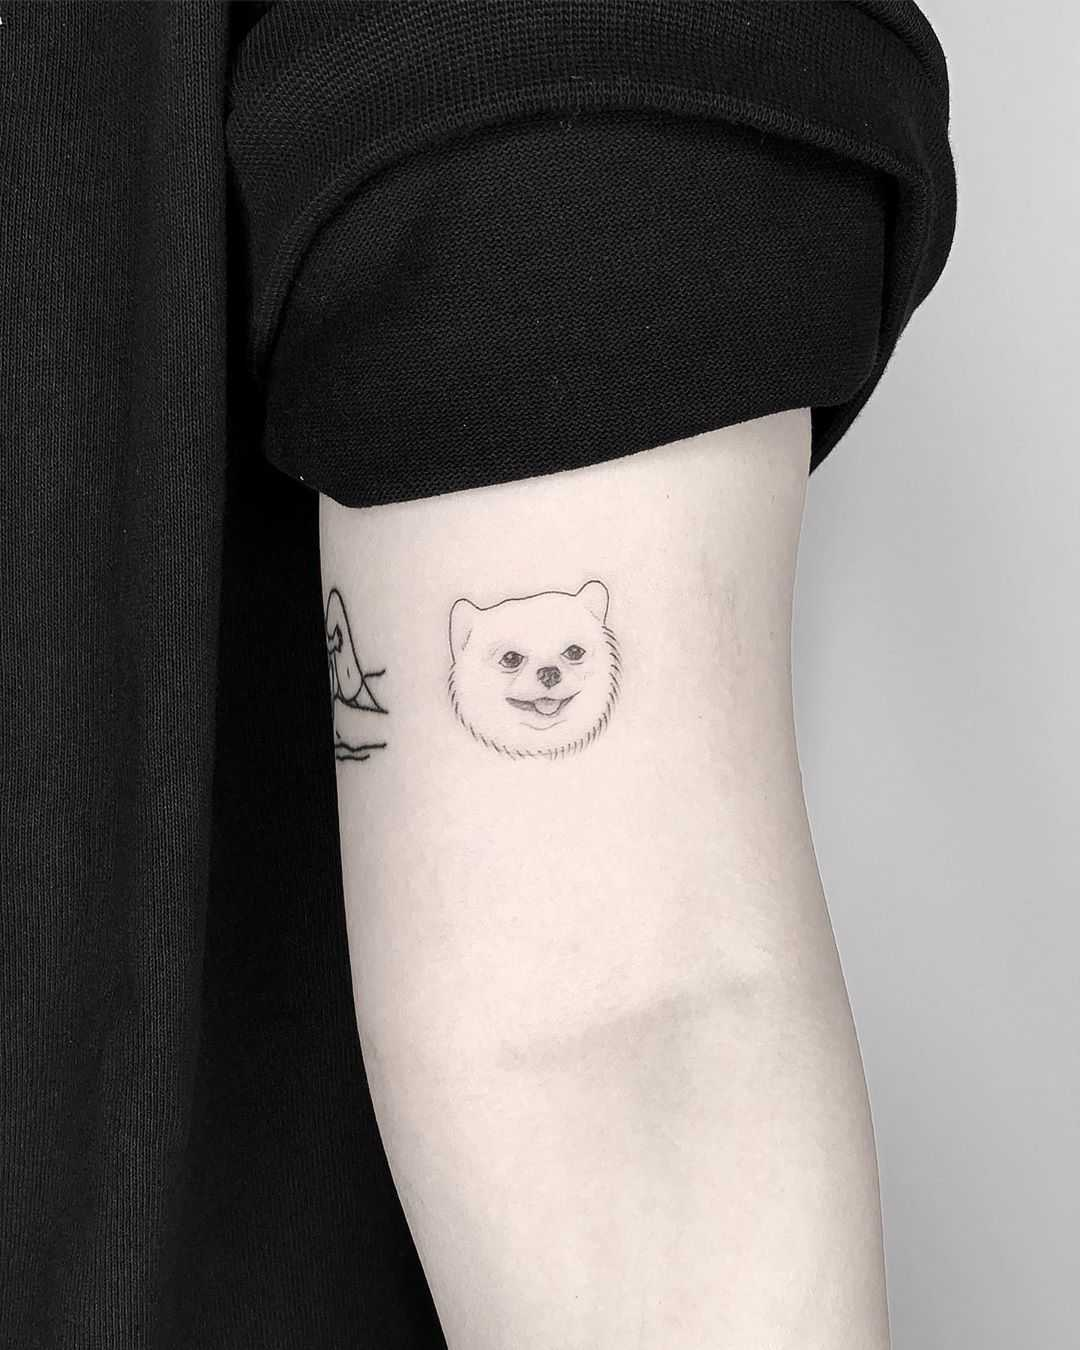 Small pup portrait tattoo by Conz Thomas